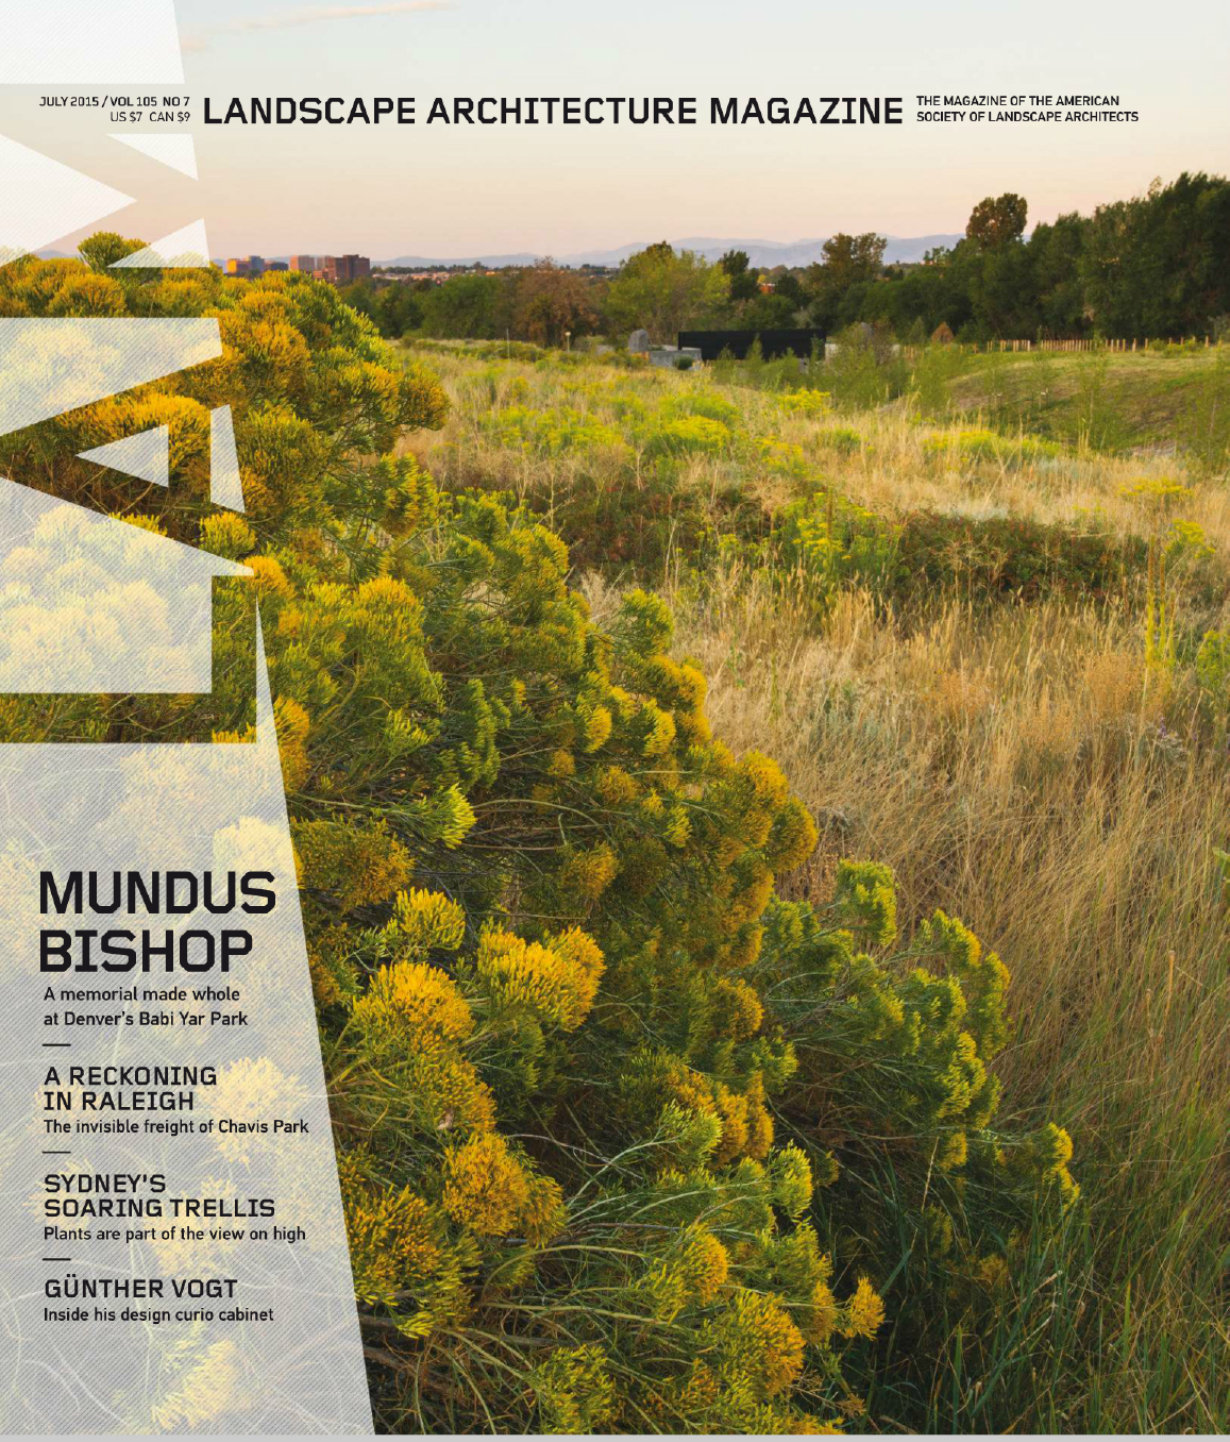 Landscape architecture magazine milan expo 2015 july 2015 biber landscape architecture magazine milan expo 2015 july 2015 thecheapjerseys Choice Image